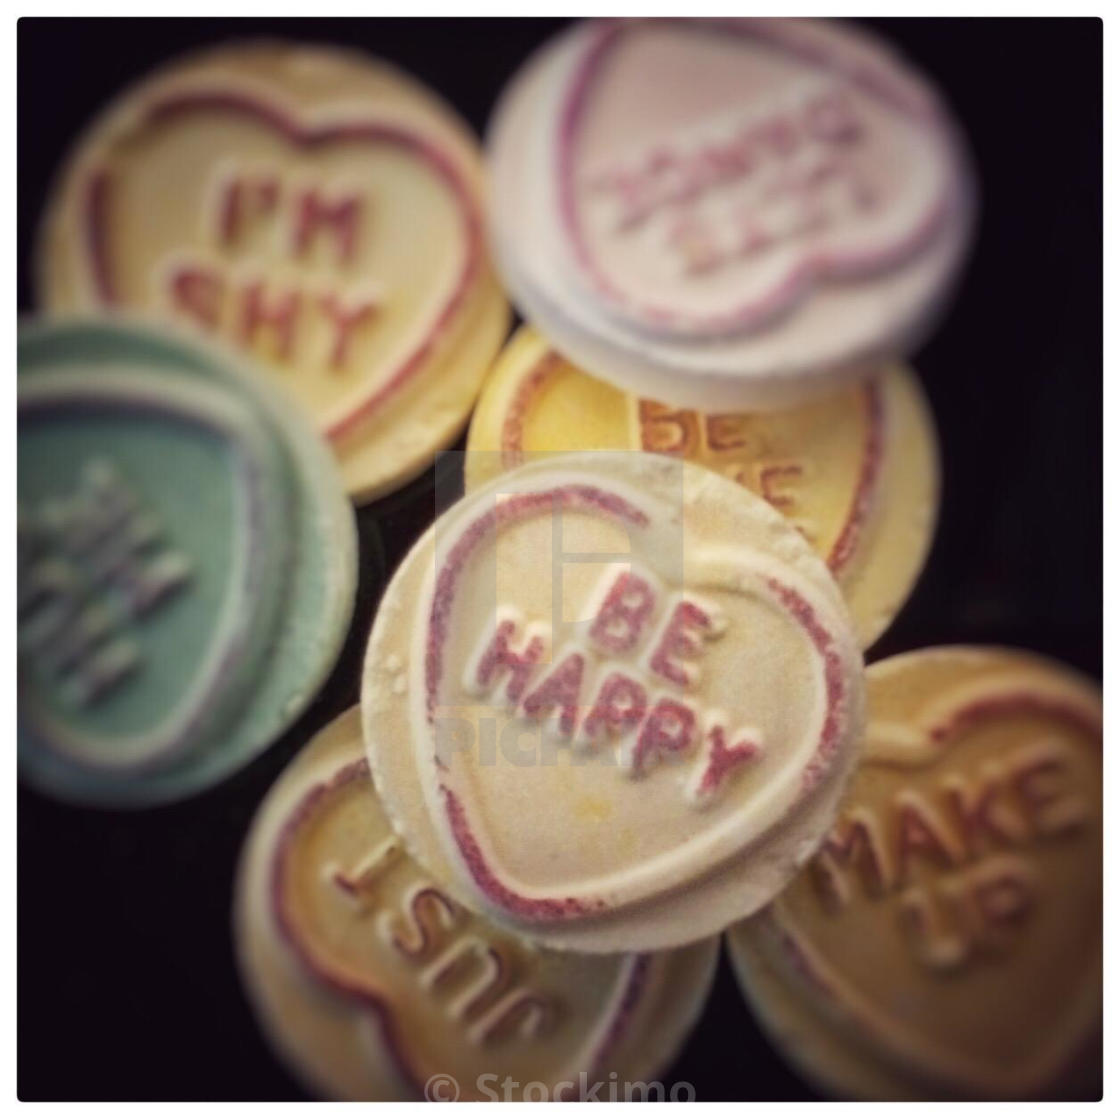 Be Happy - message on a love heart sweet - License, download or